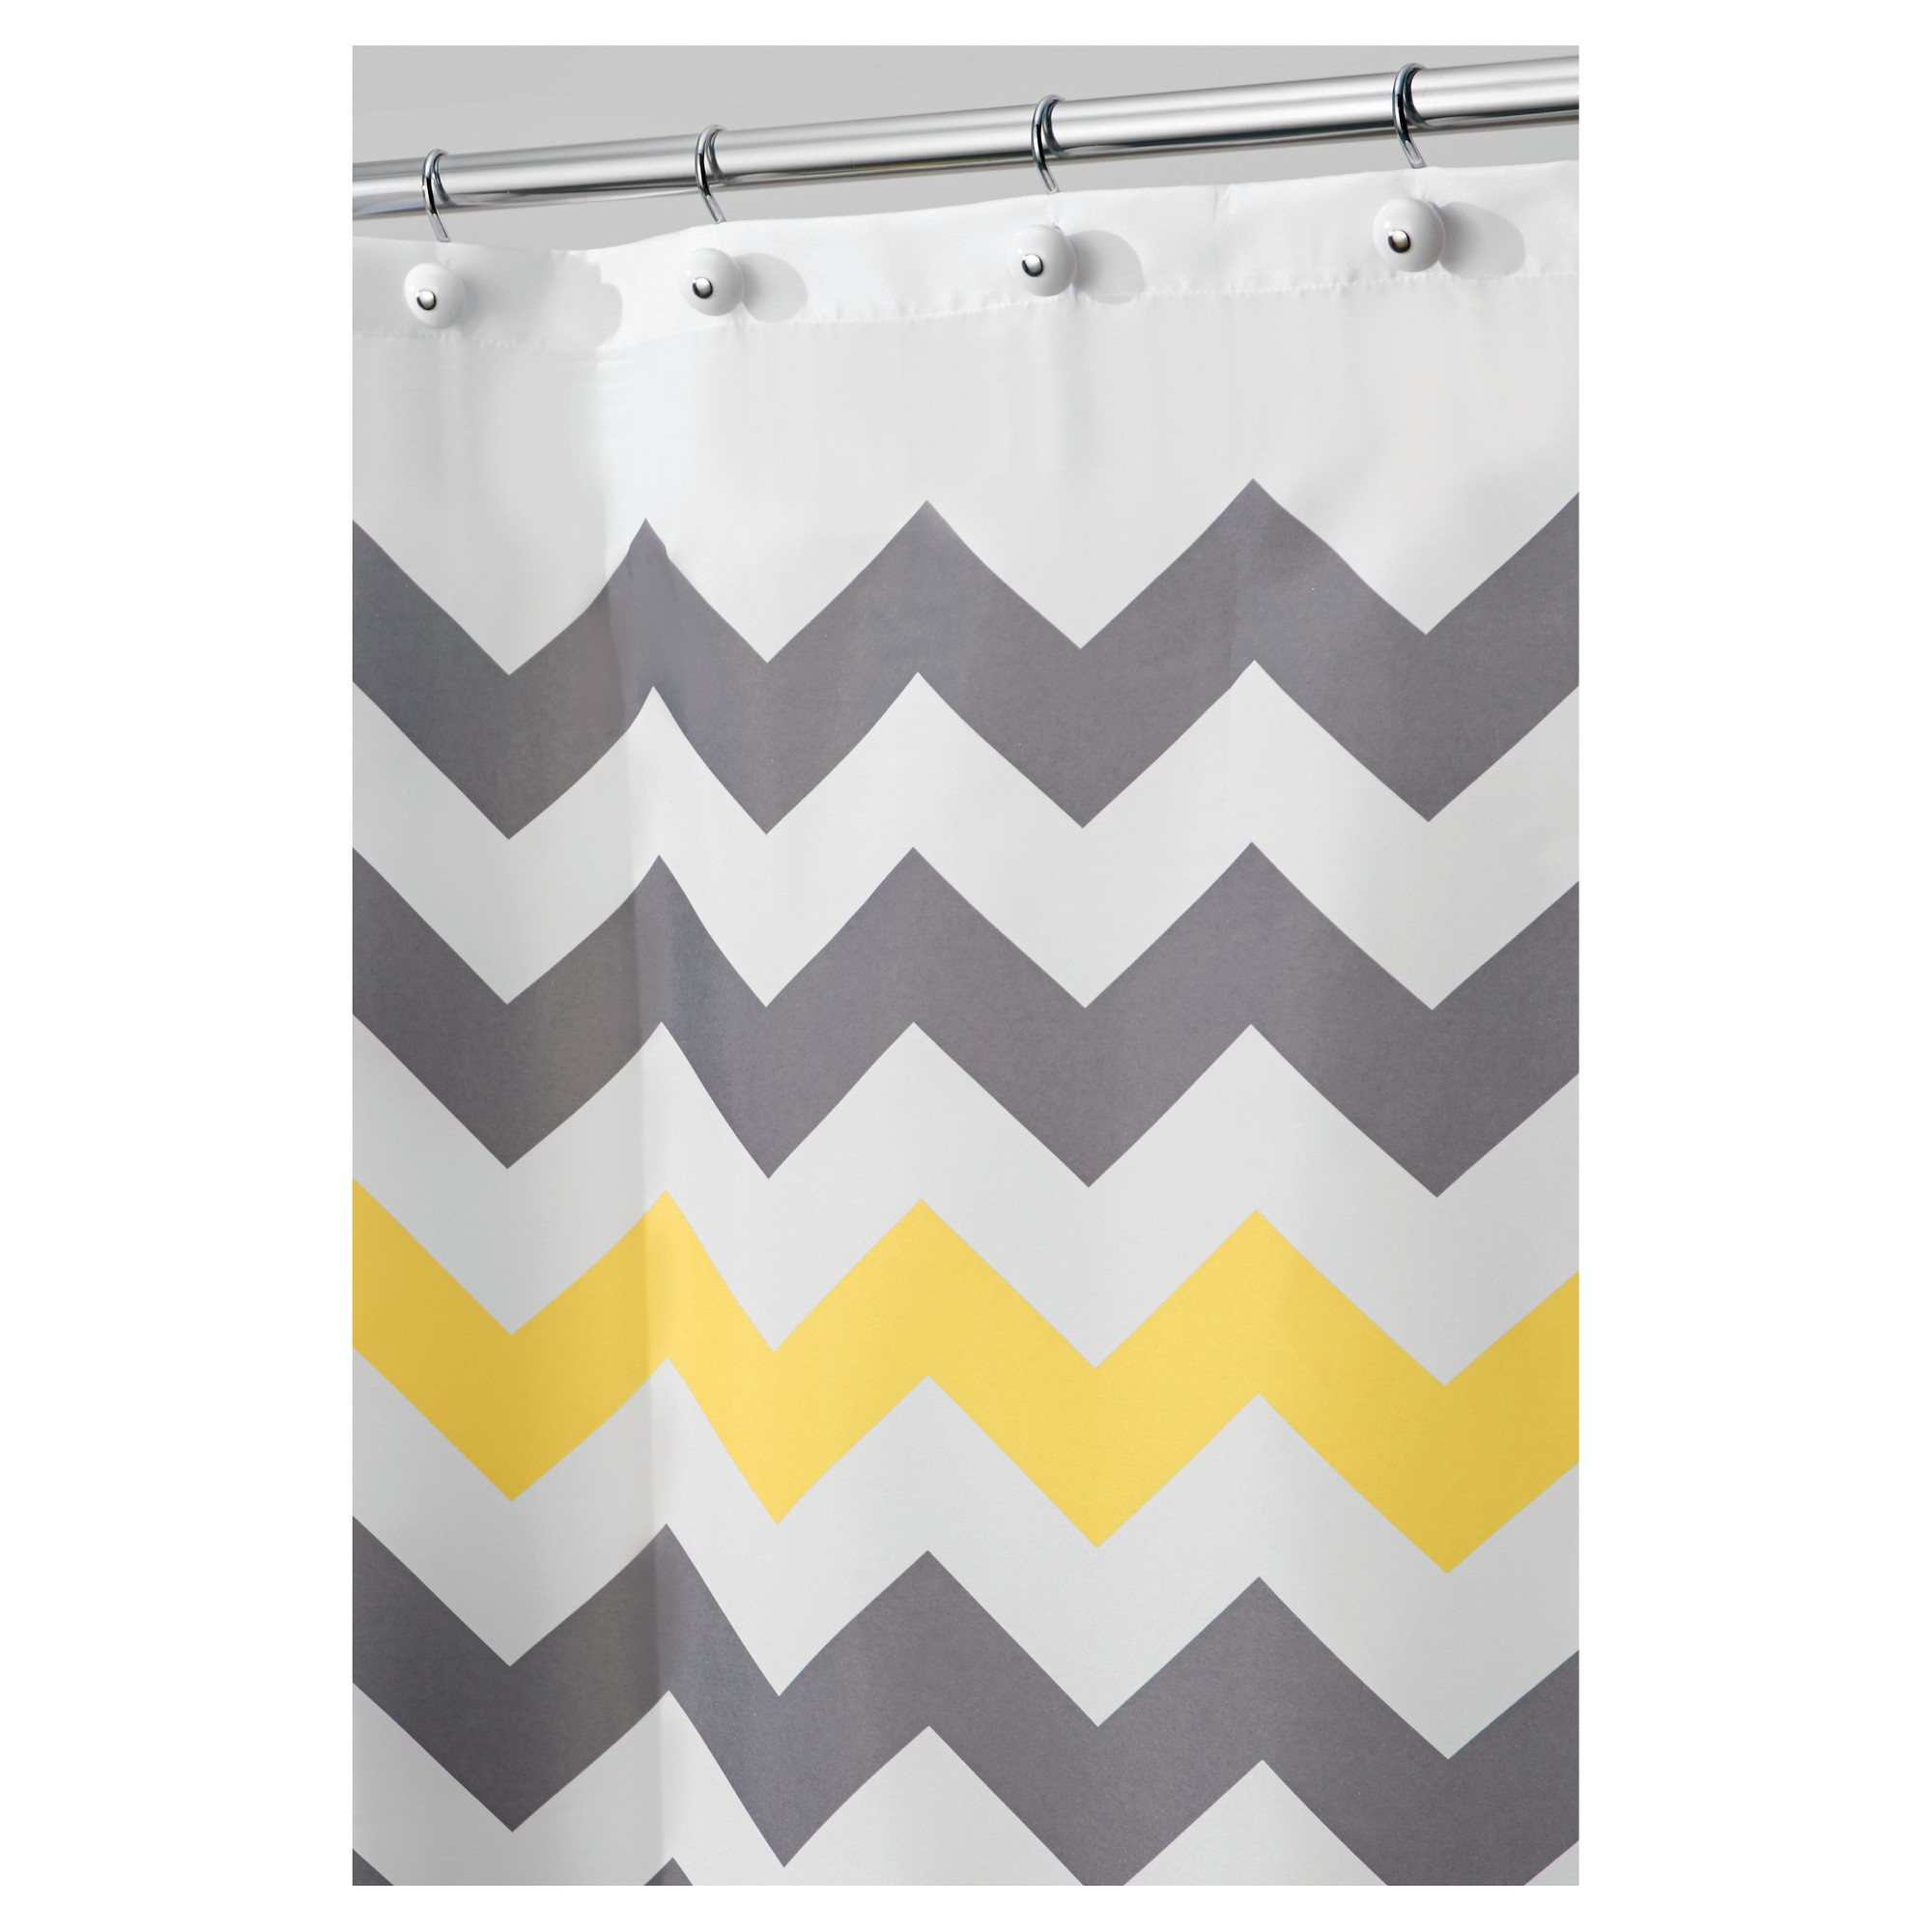 Shower Curtain Polyester Chevron X Wide 108 X72 Gray Yellow Interdesign Chevron Shower Curtain Grey Curtains Shower Curtain 108 x 72 shower curtains